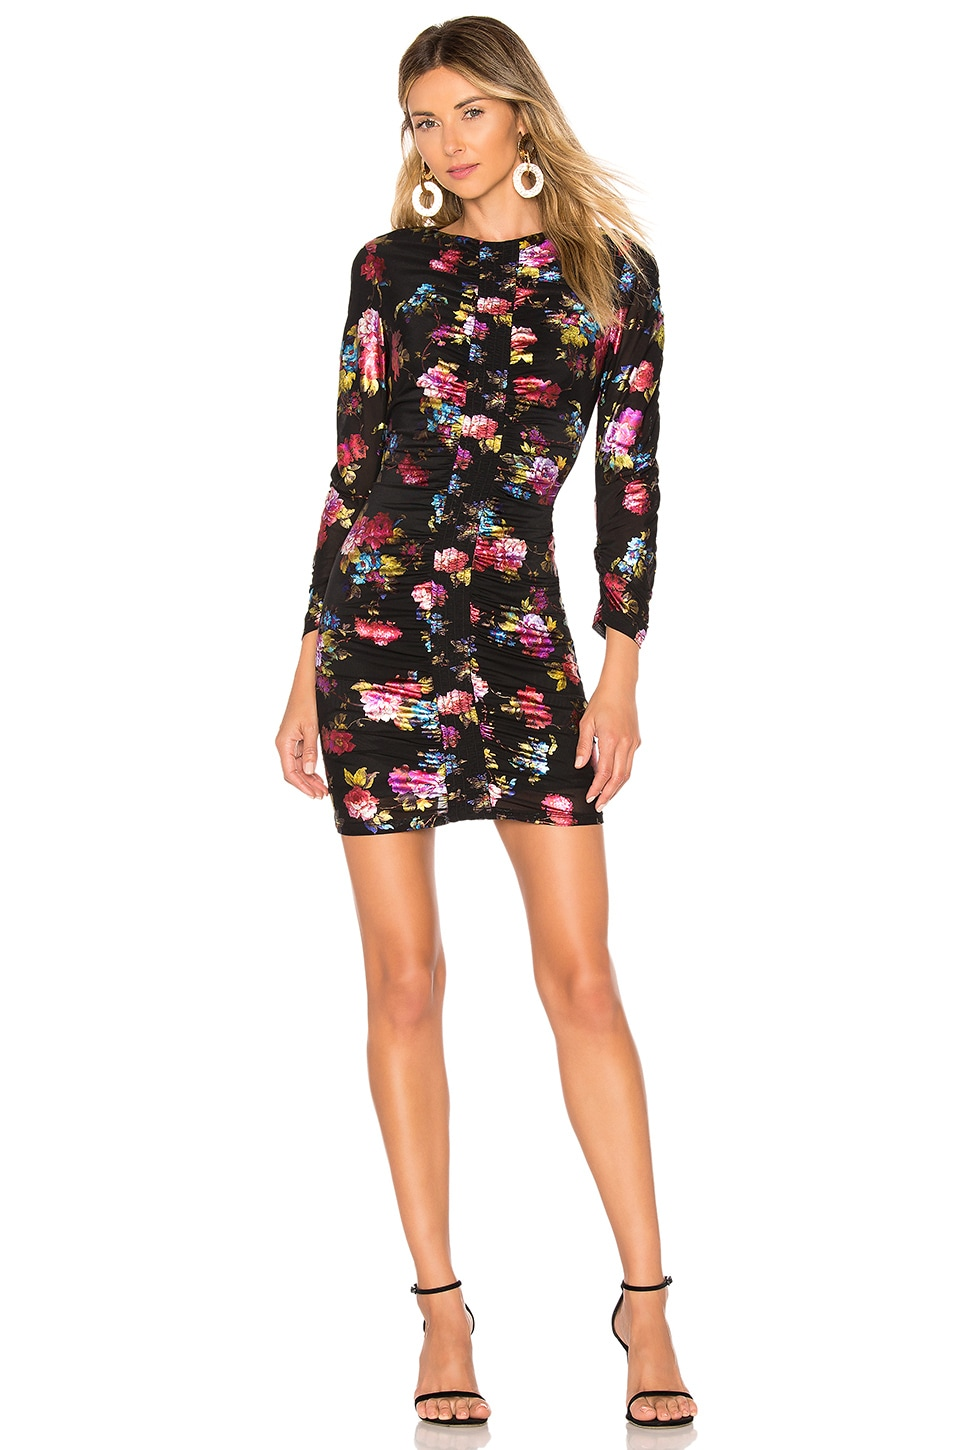 Parker Adrienne Dress in Black Multi